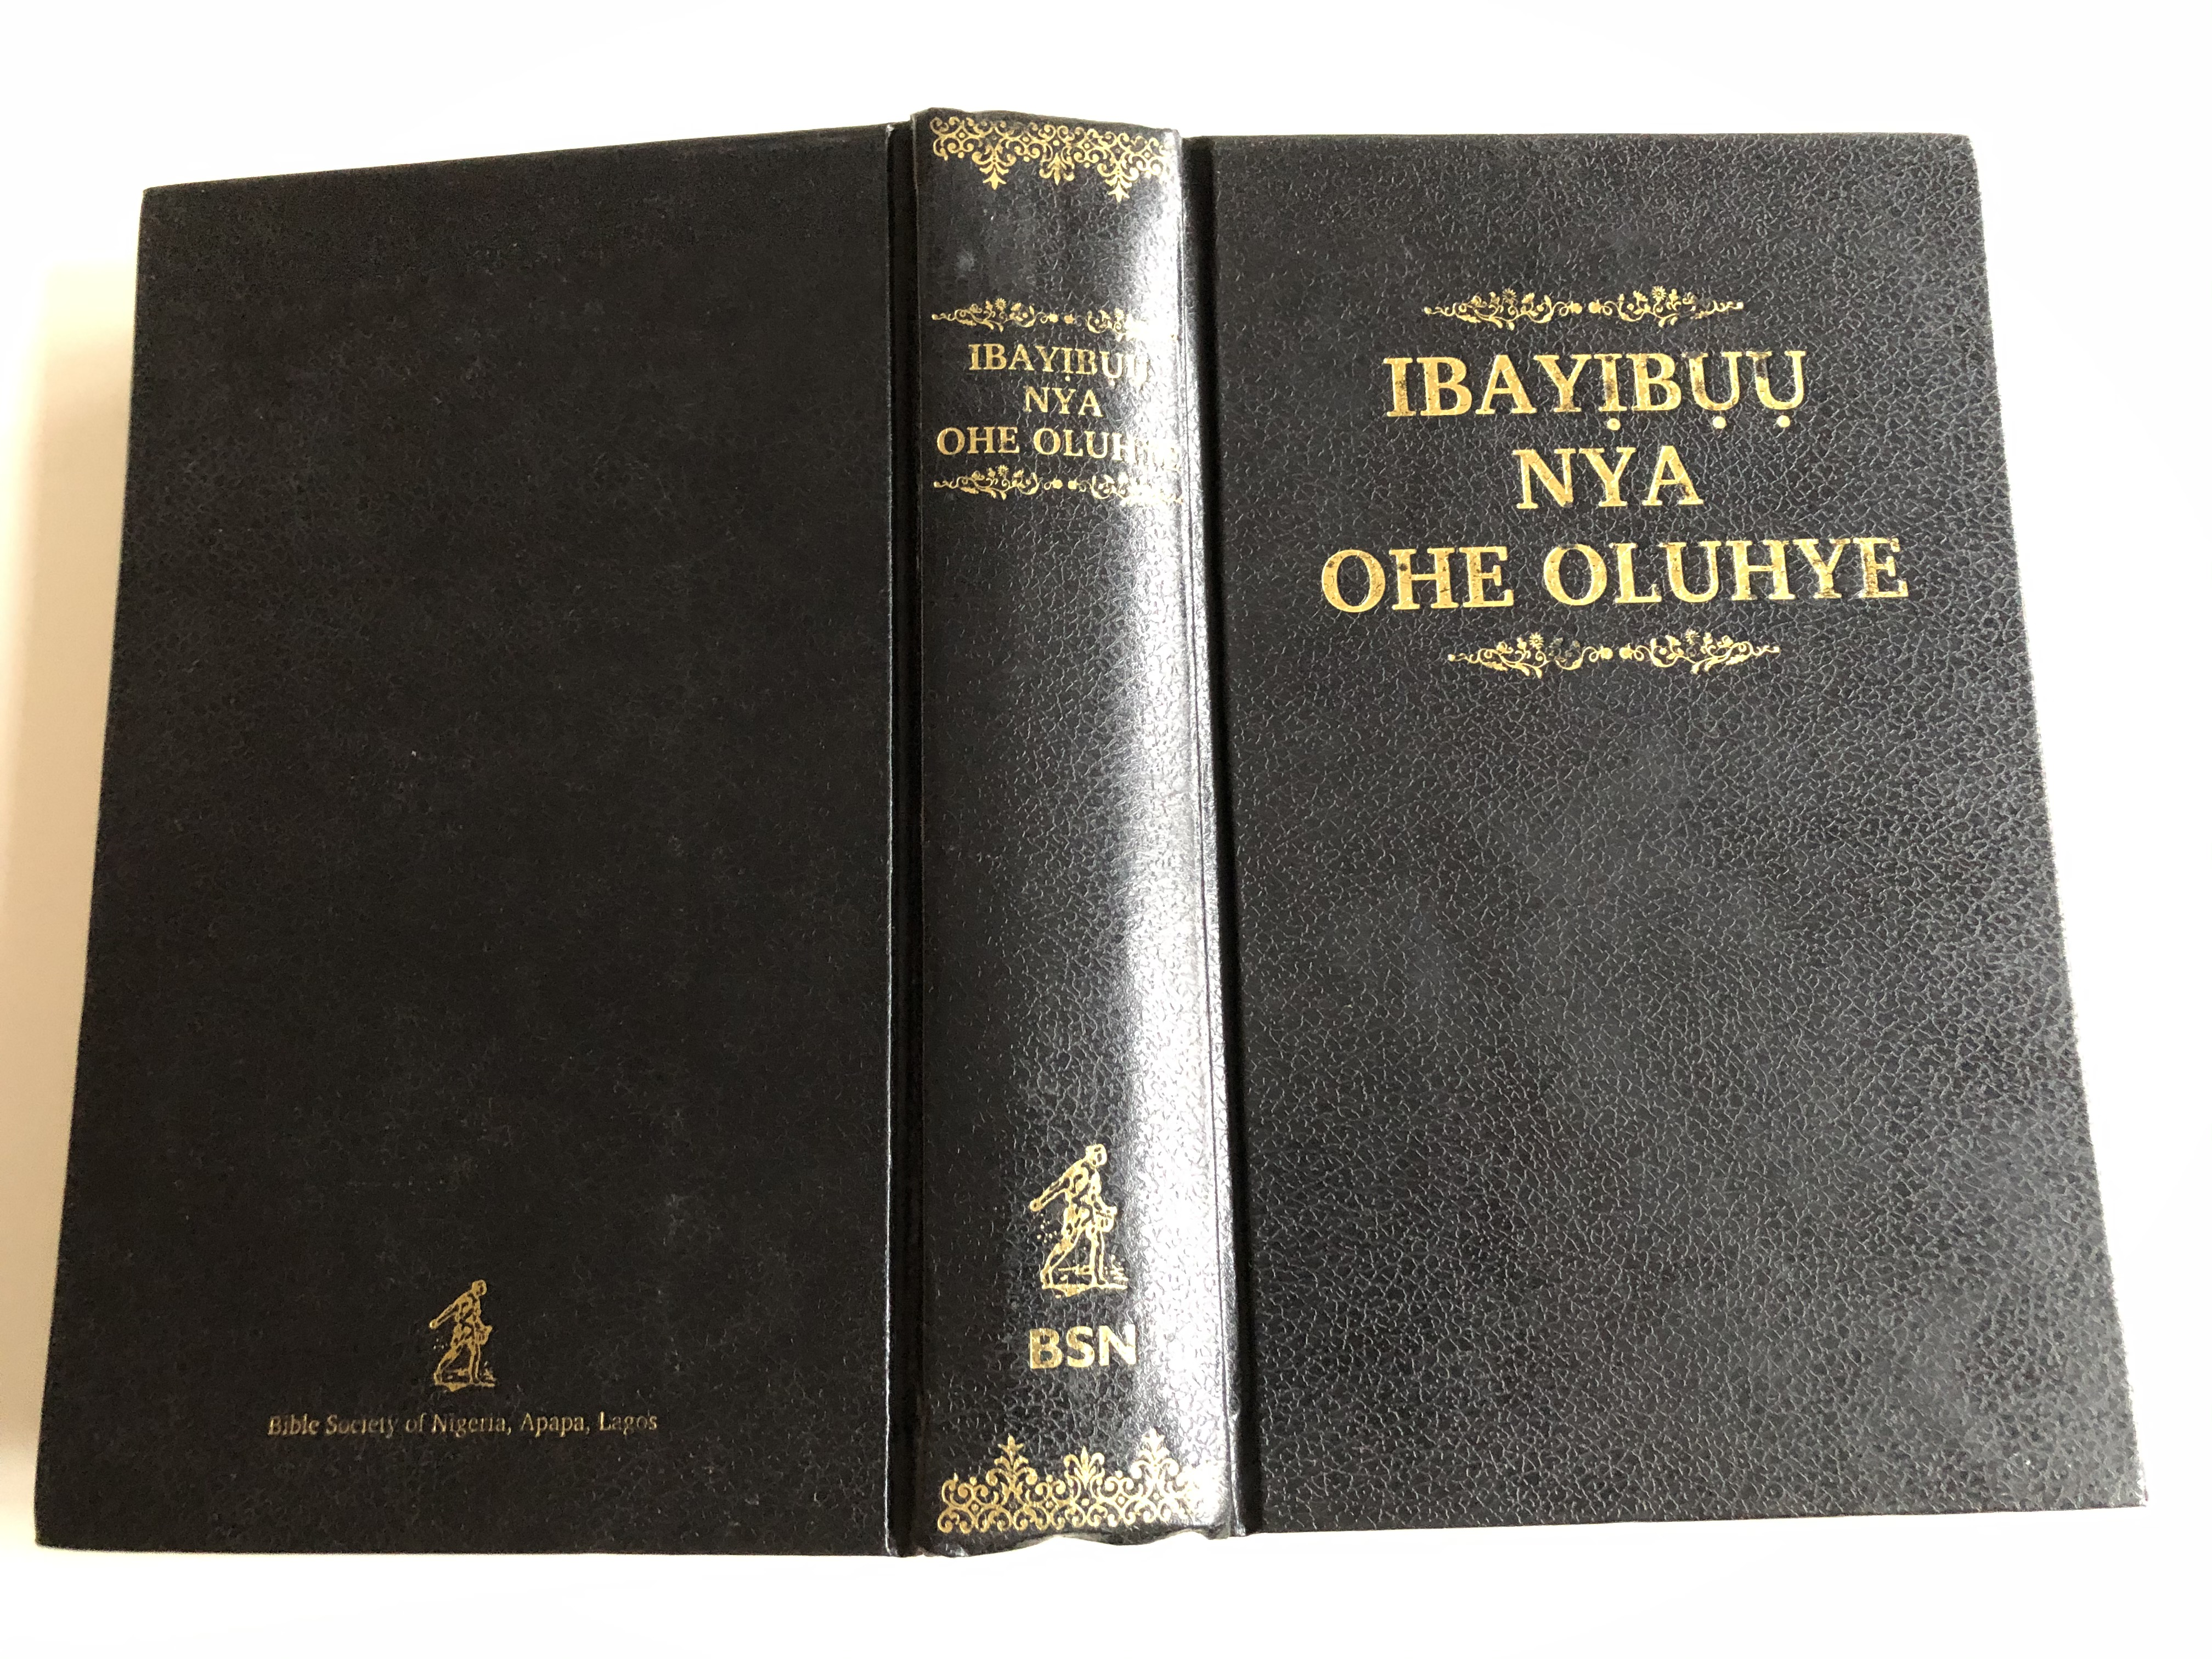 igede-holy-bible-ibayibuu-nya-oluhye-bible-society-of-nigeria-2013-17.jpg